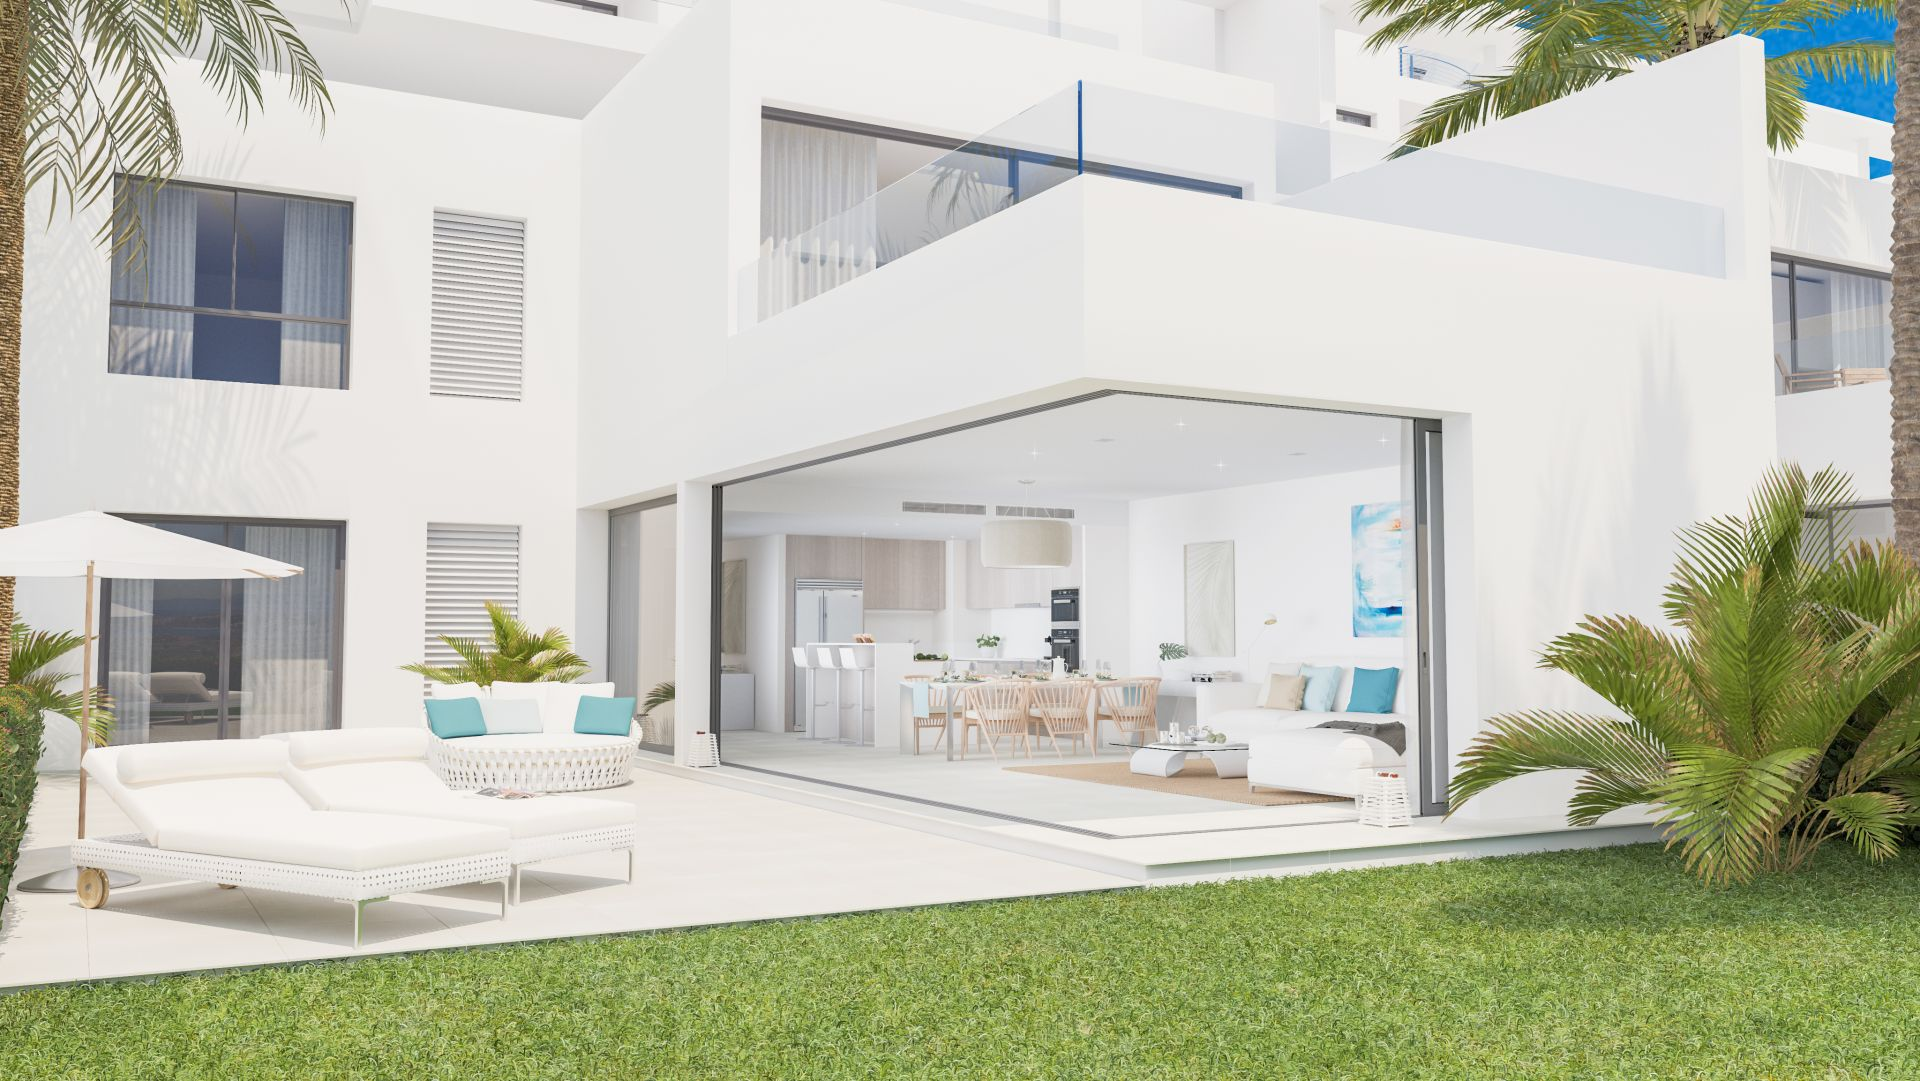 12 modern new town houses for sale in finca cortesin in casares